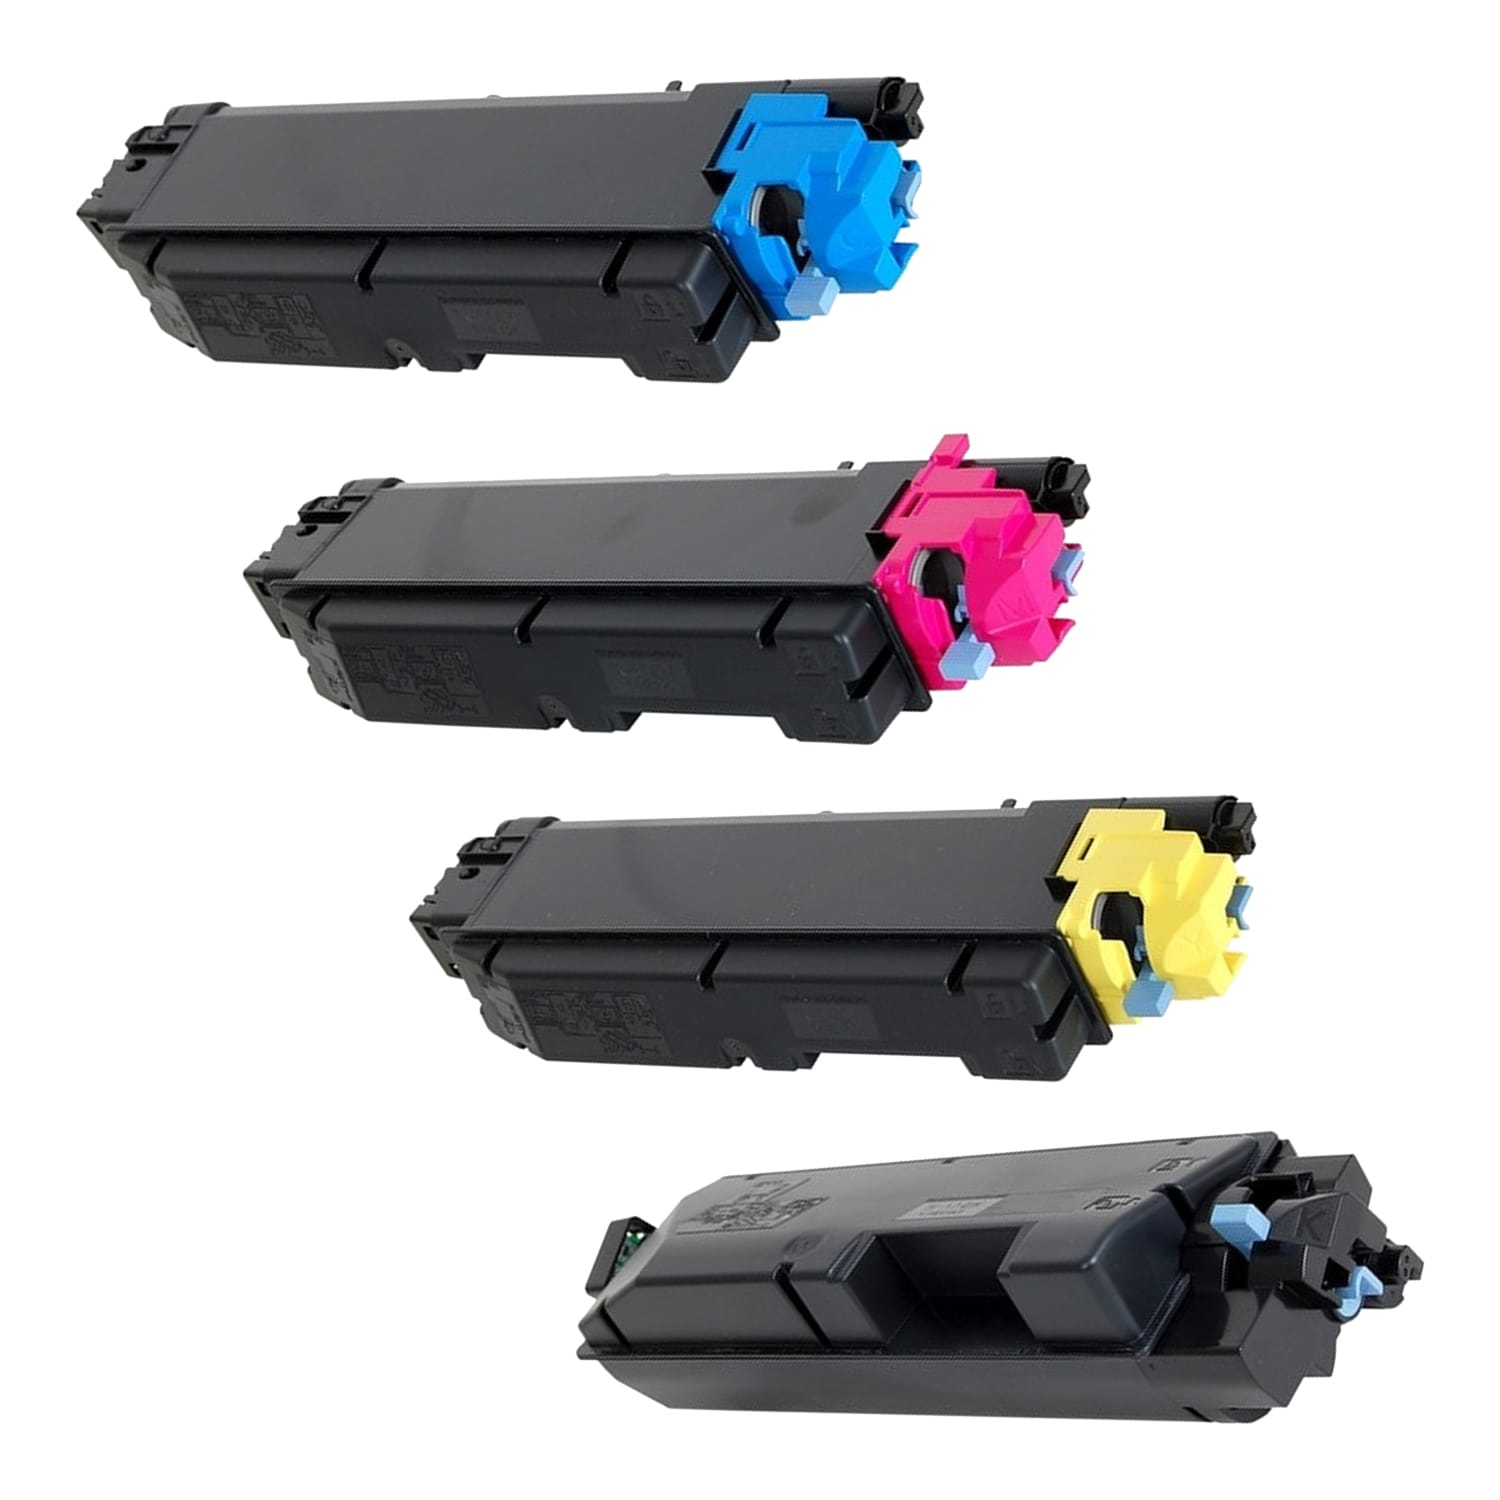 Compatible Kyocera Mita TK-5142 Toner Pack - 4 Cartridges